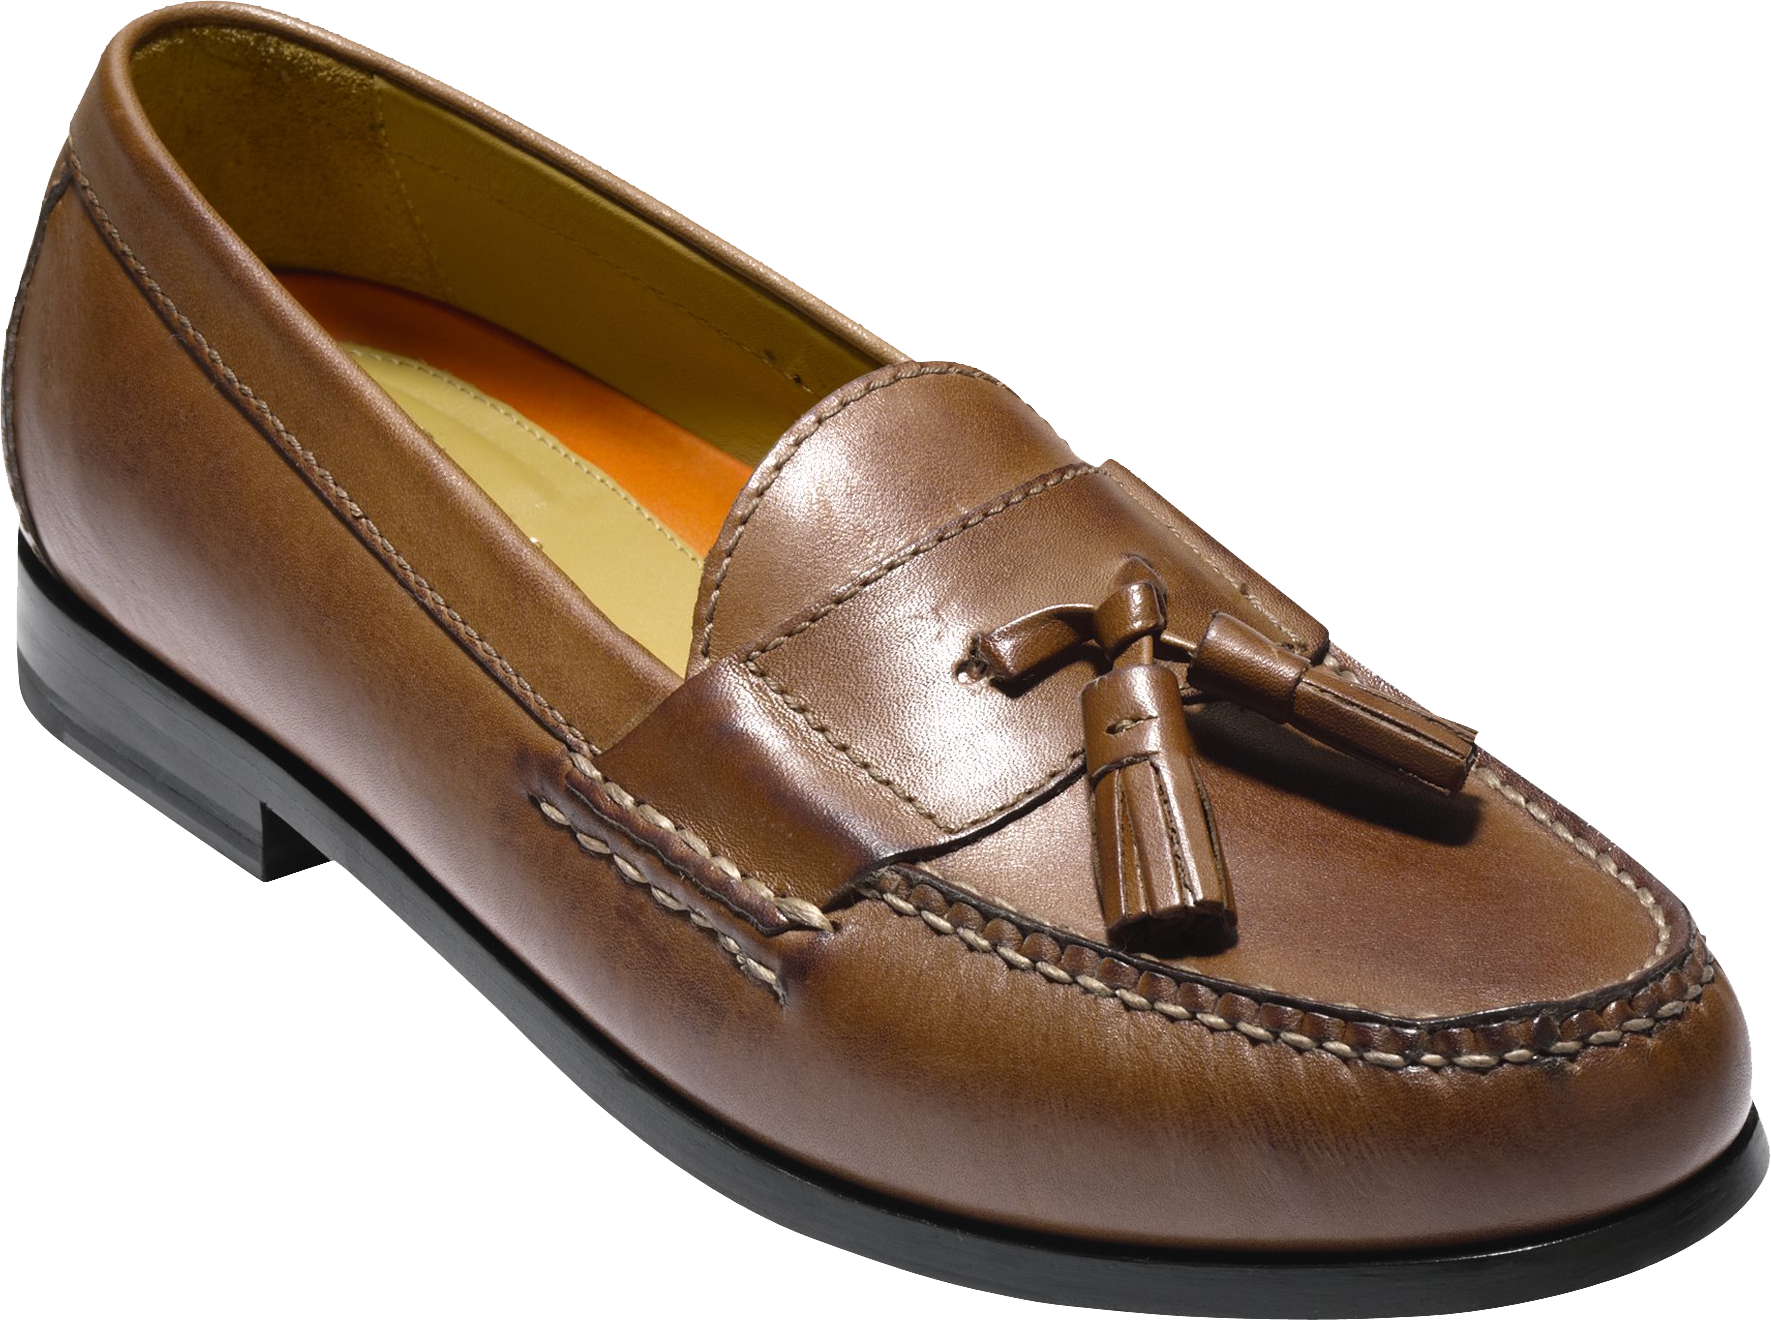 bfe7eb342b4 Cole Haan Pinch Grand Tassel Loafers - Cole Haan